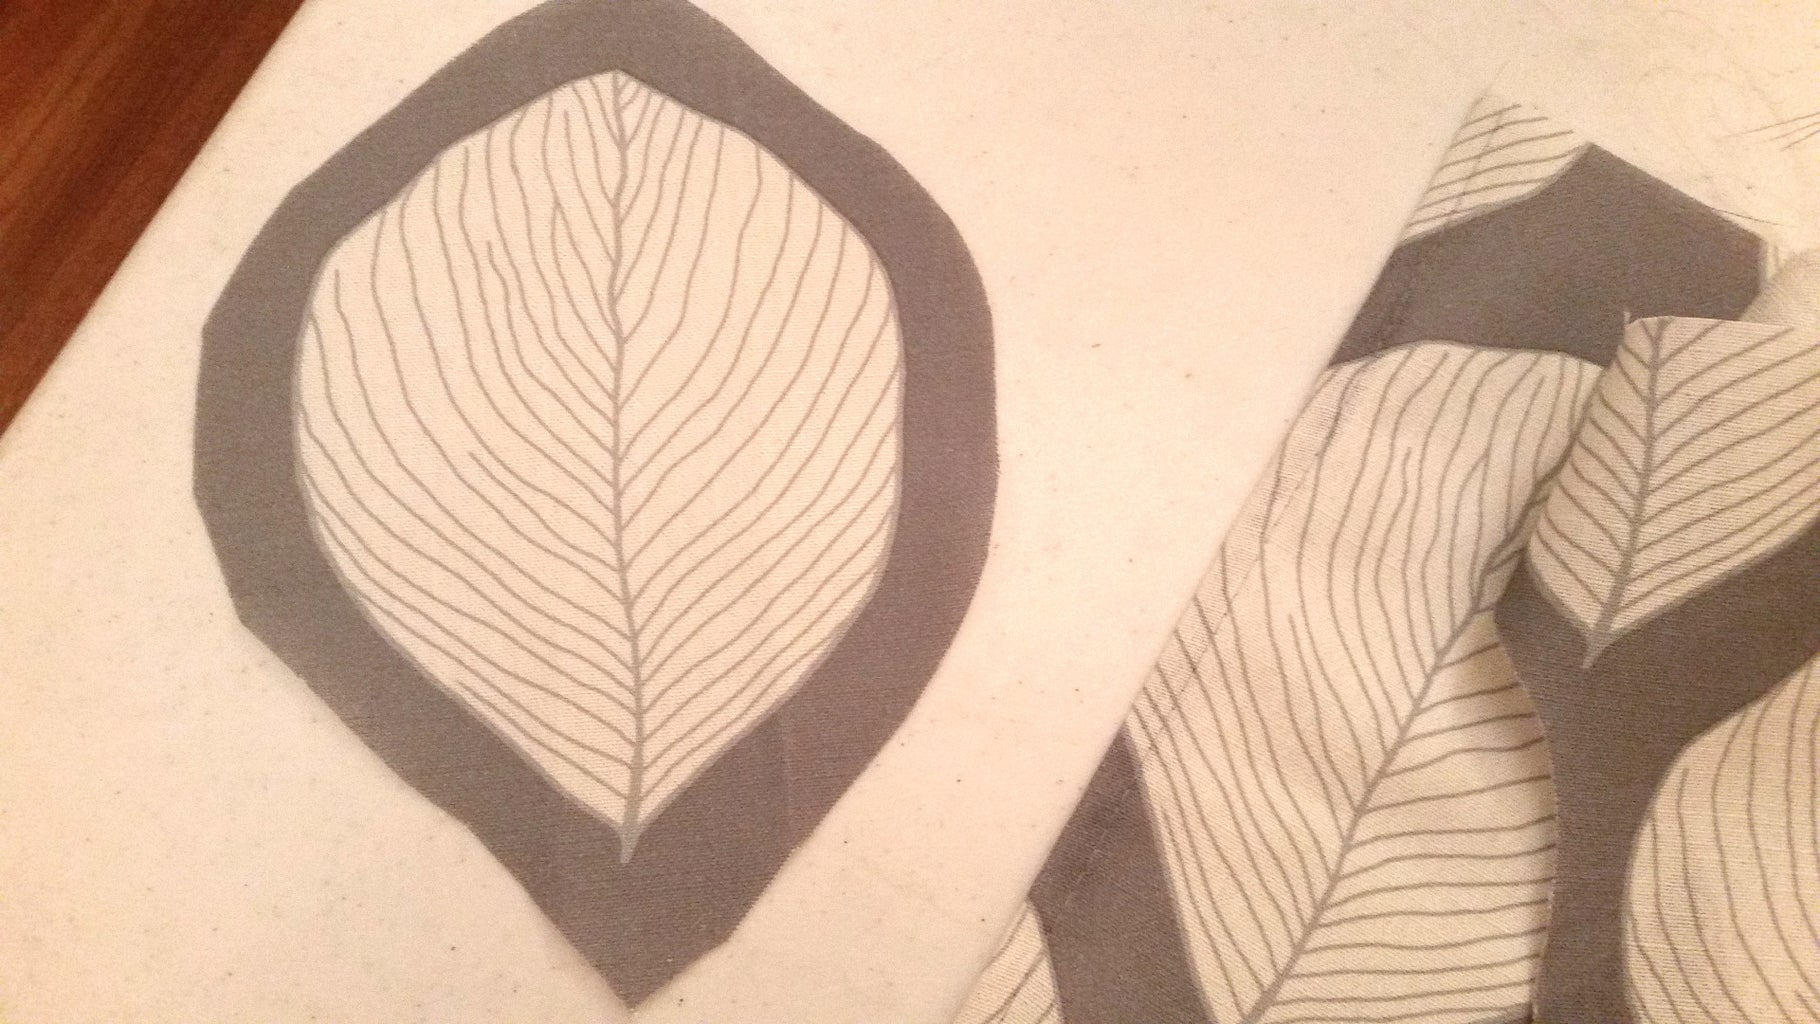 Fun Part - Lay Out the Leave Design